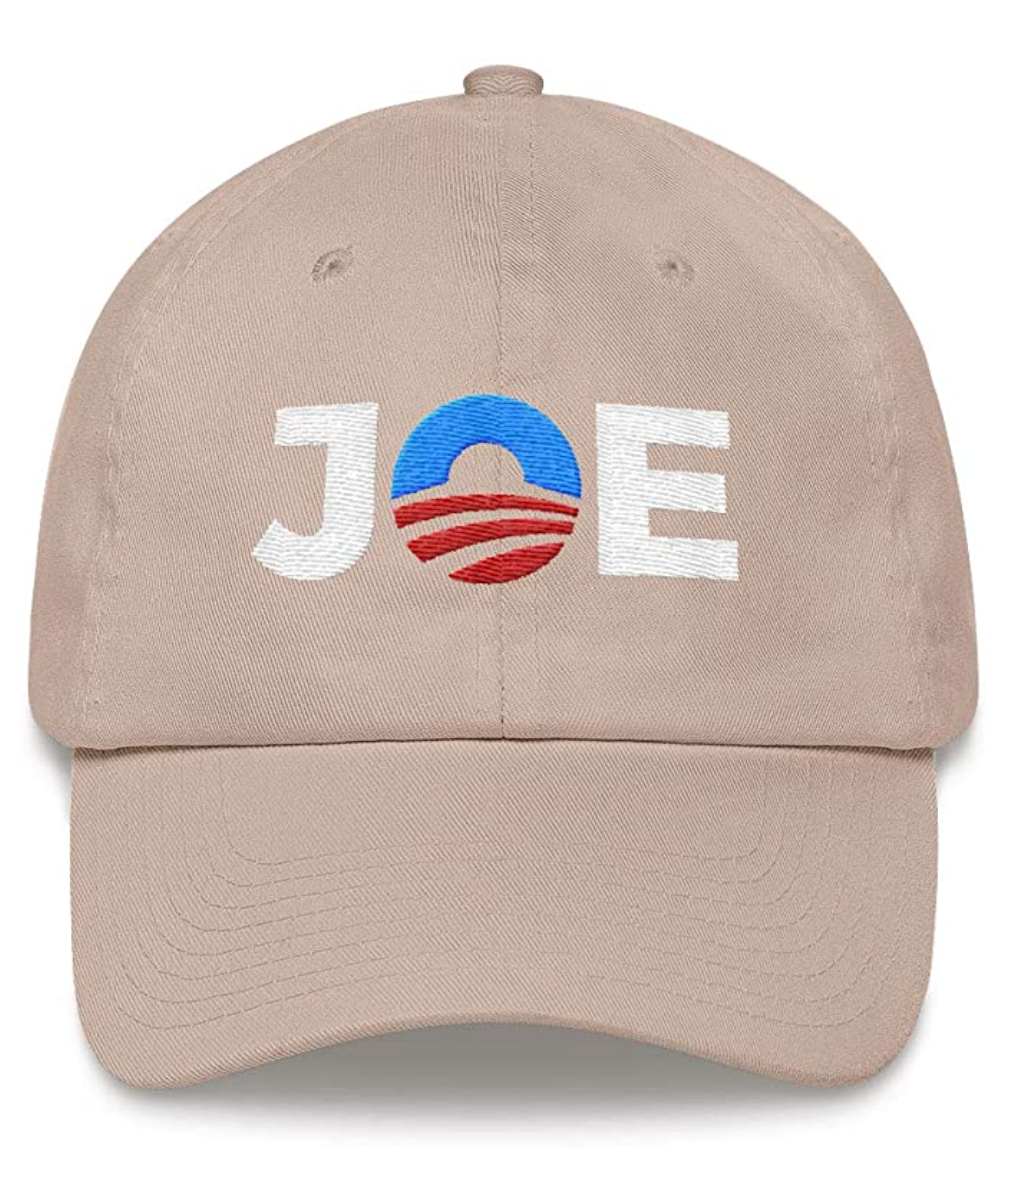 Joe Biden 2020 Dad Cap